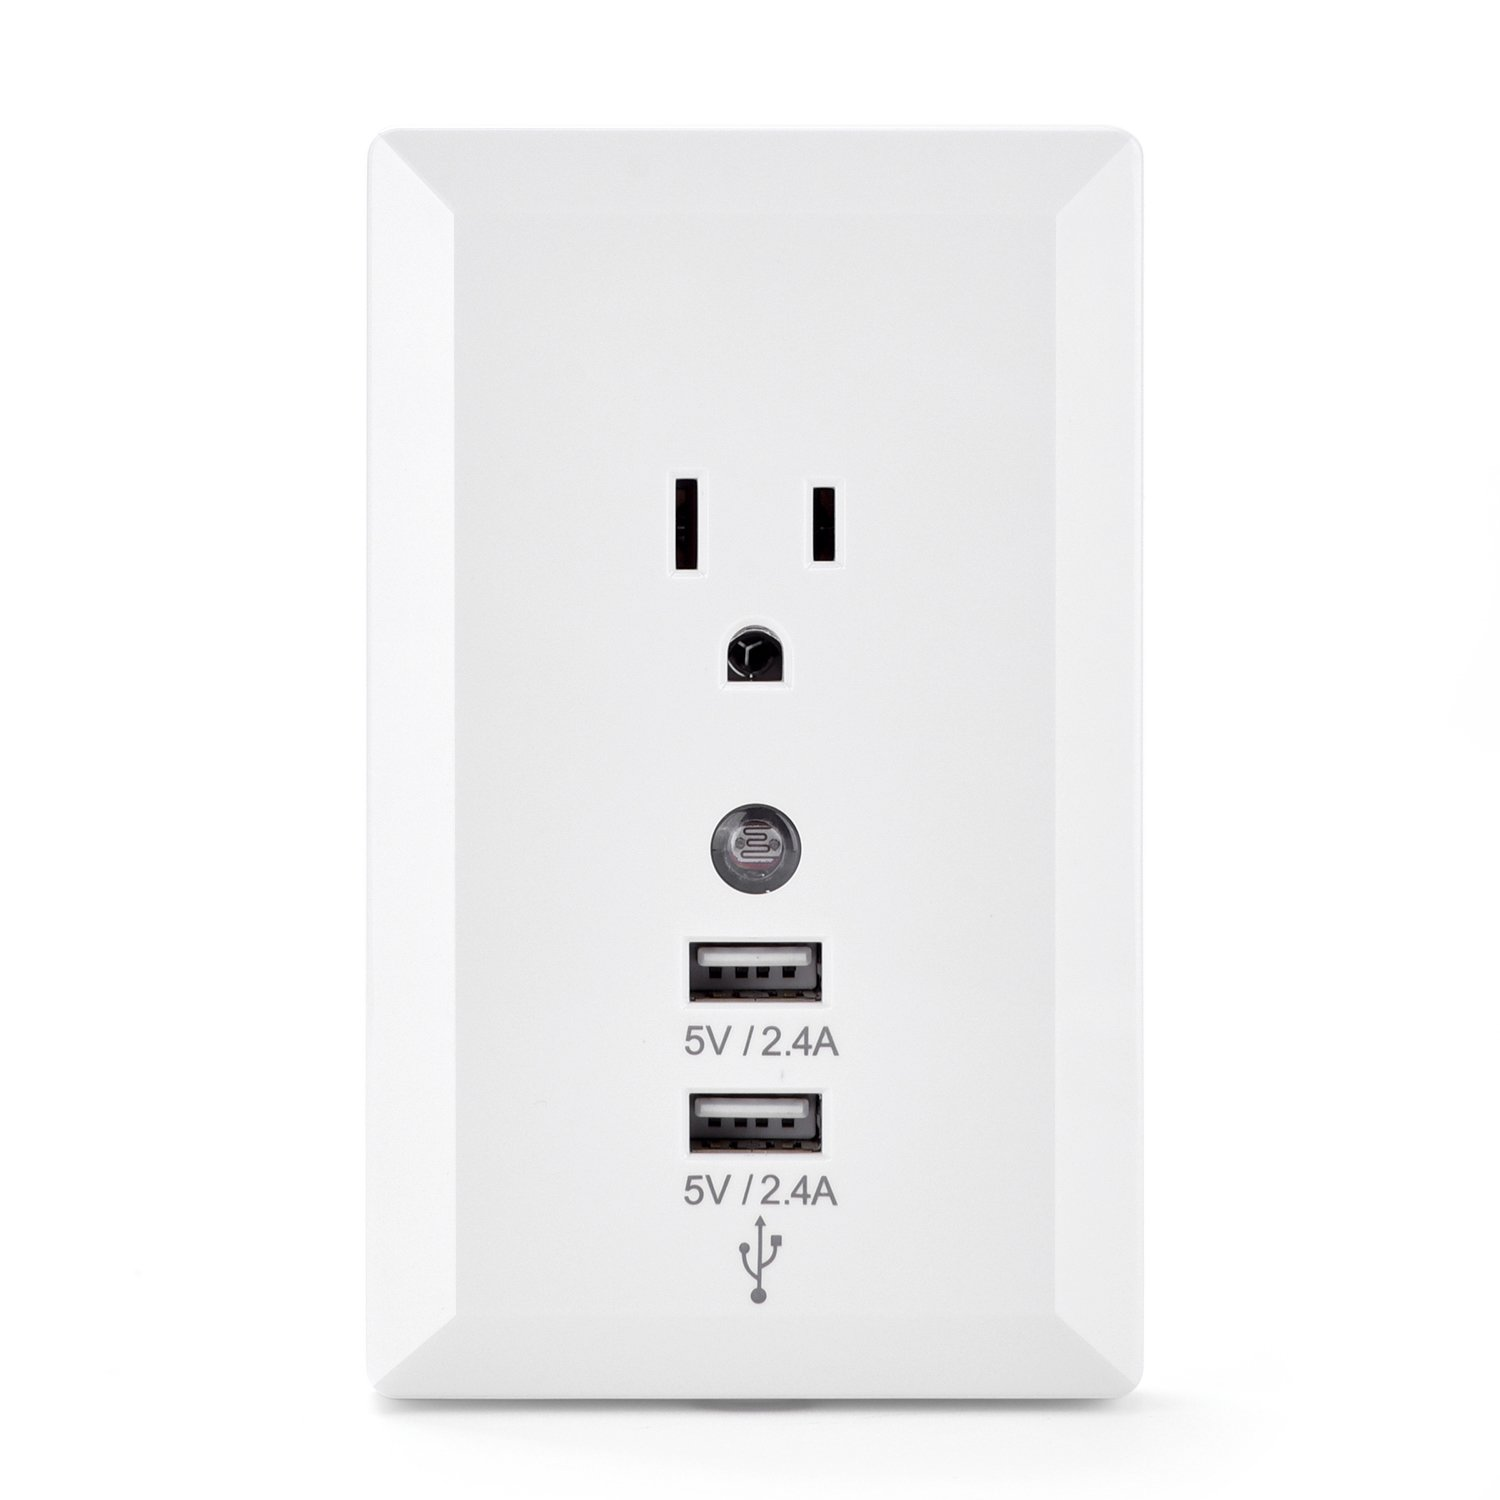 Dual USB Charger Outlet Wall Outlet Duplex Receptacle Smart High Speed 15-Amp with Power Plug and Sensor Night Light without Installation for Travel Home, White